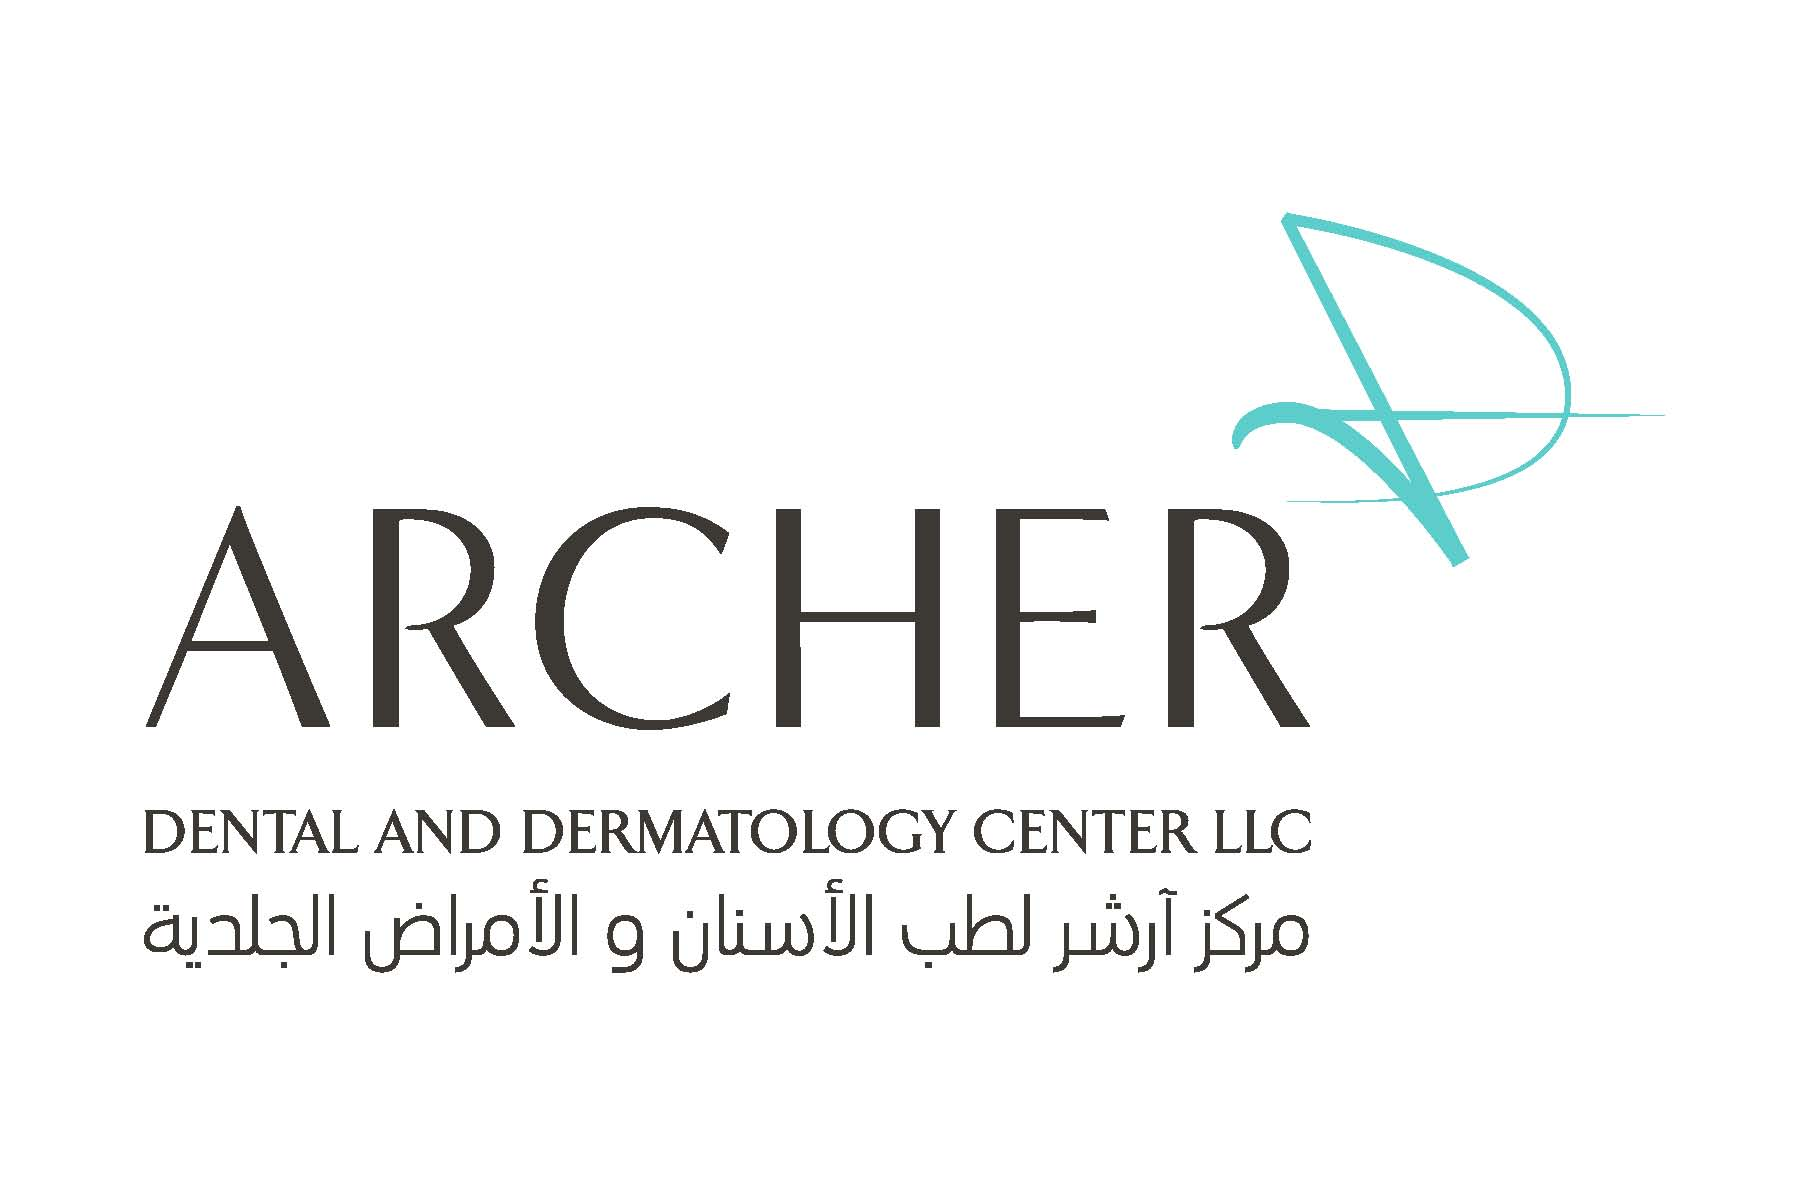 Archer Dental and Dermatology Center